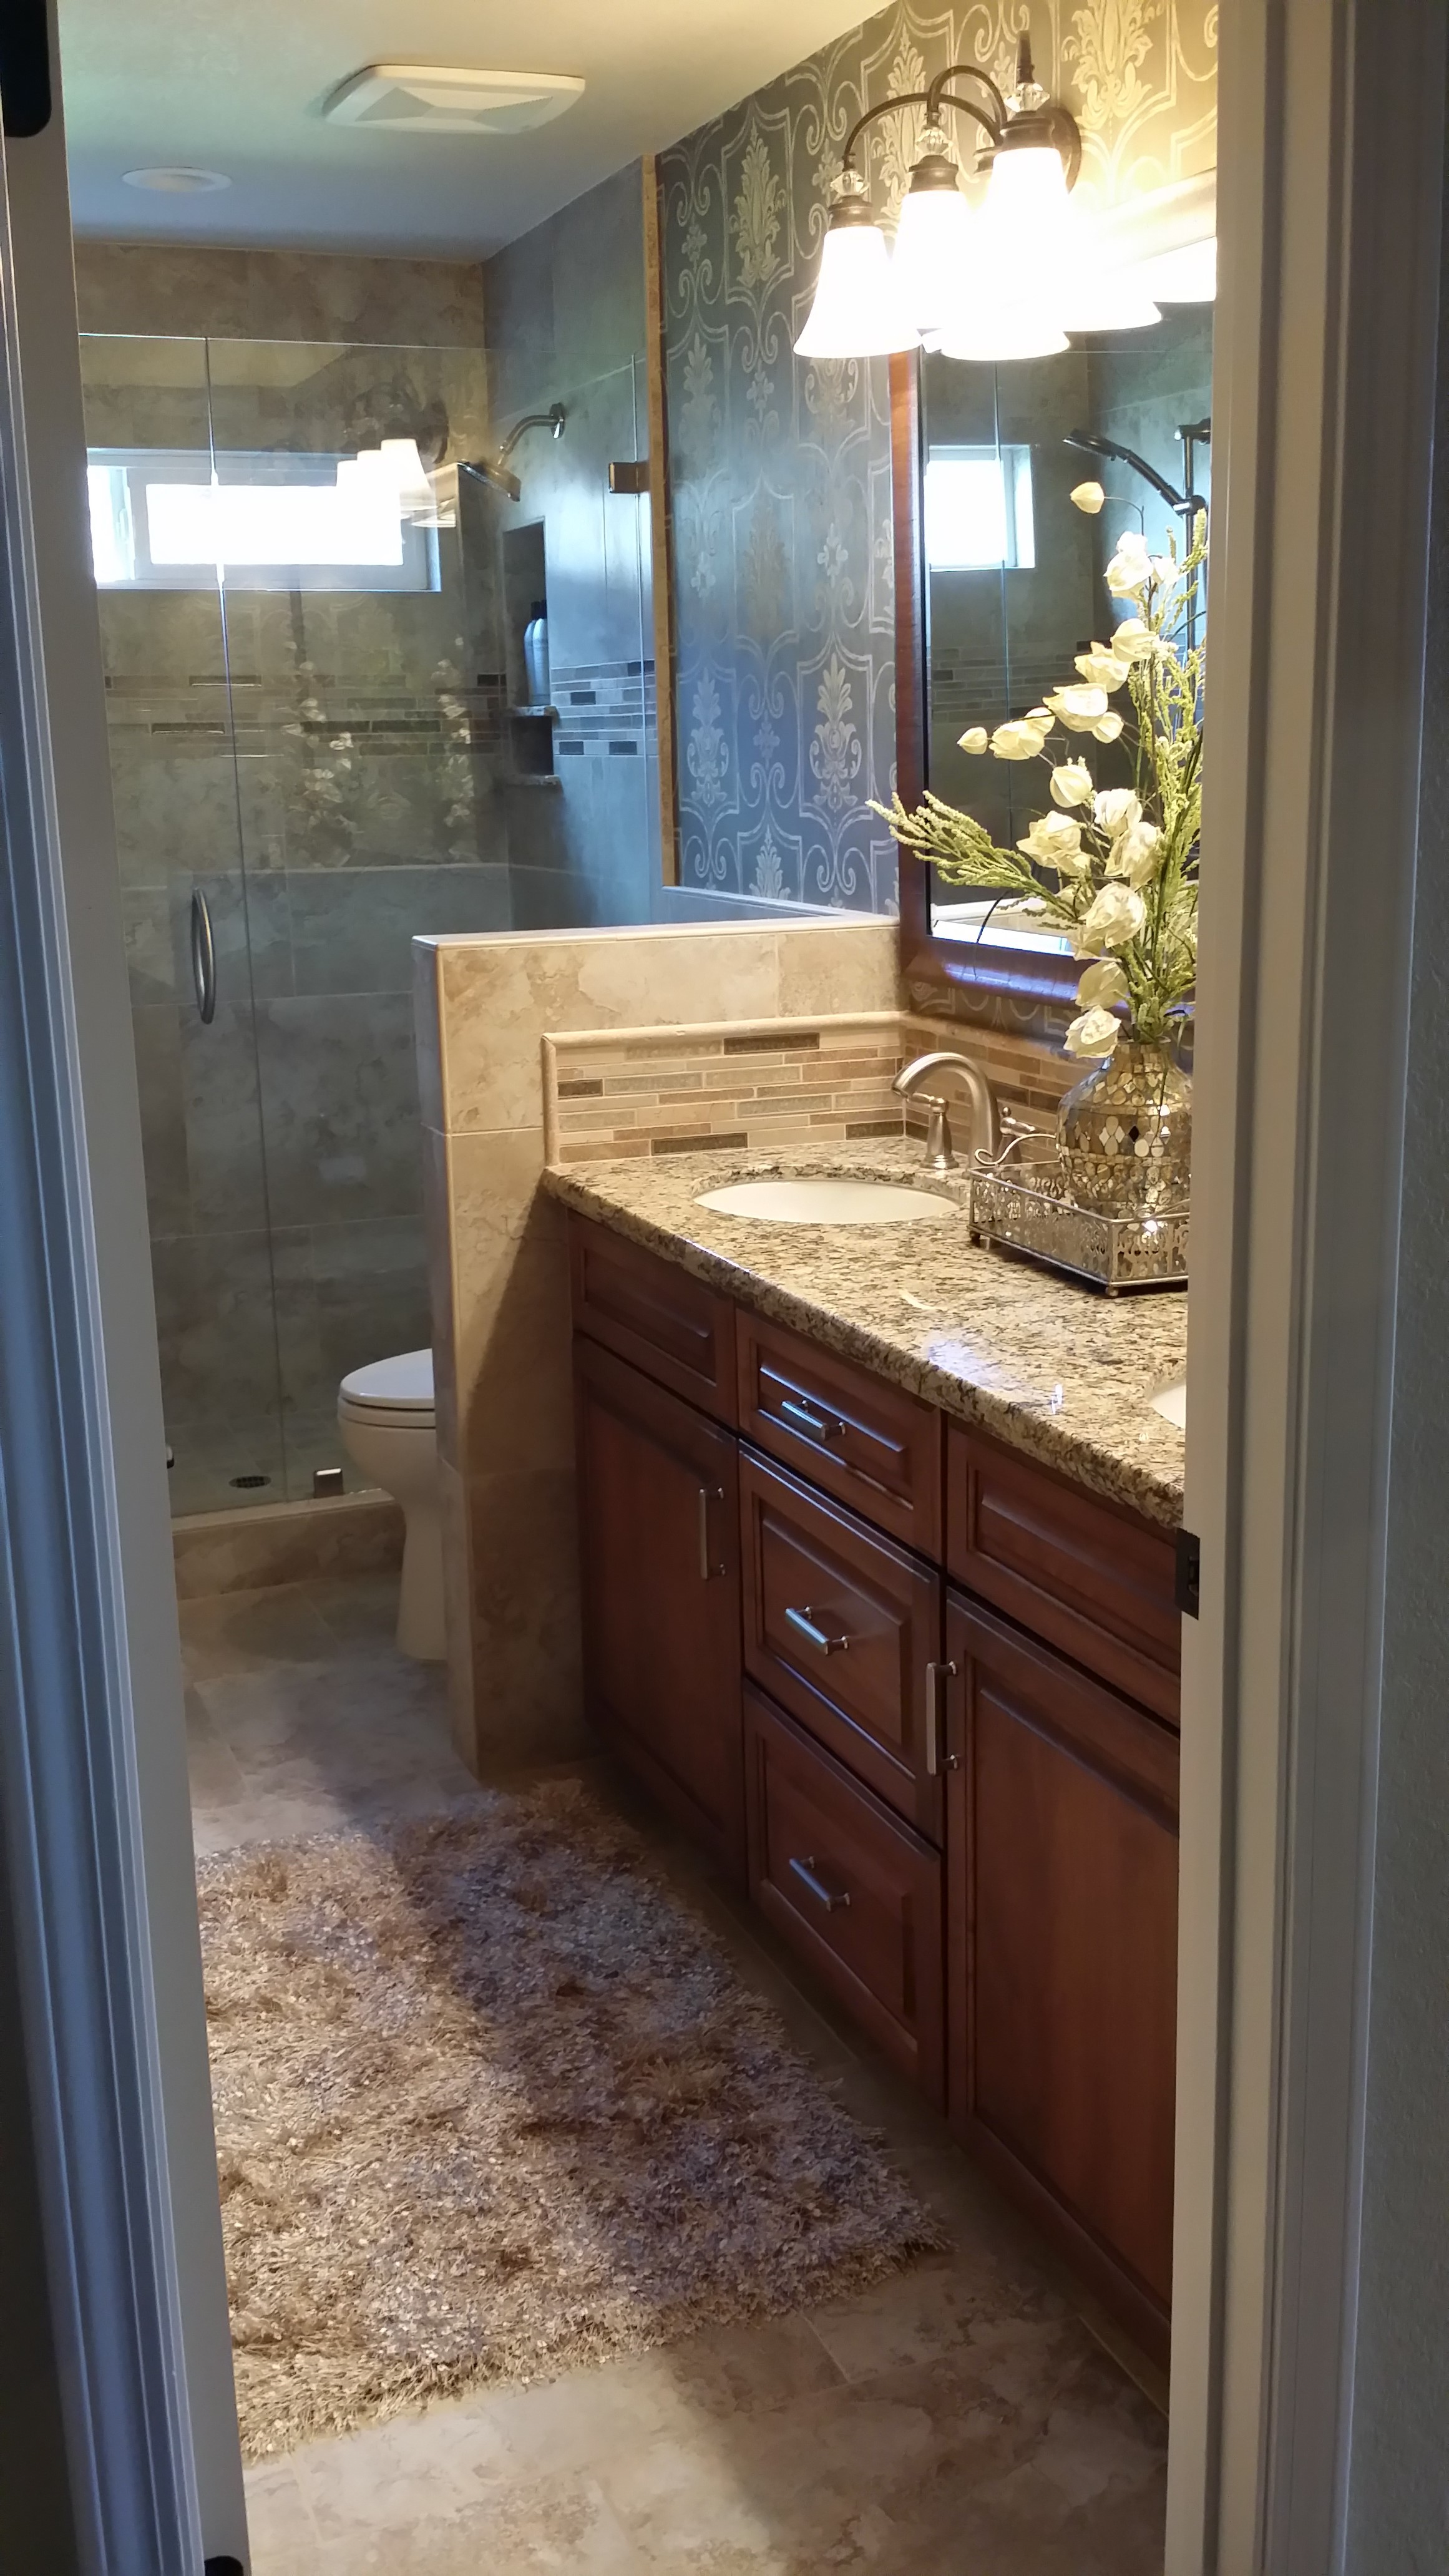 Bathroom vanity with cherry cabinets and granite counter, shower and toilet in the background.